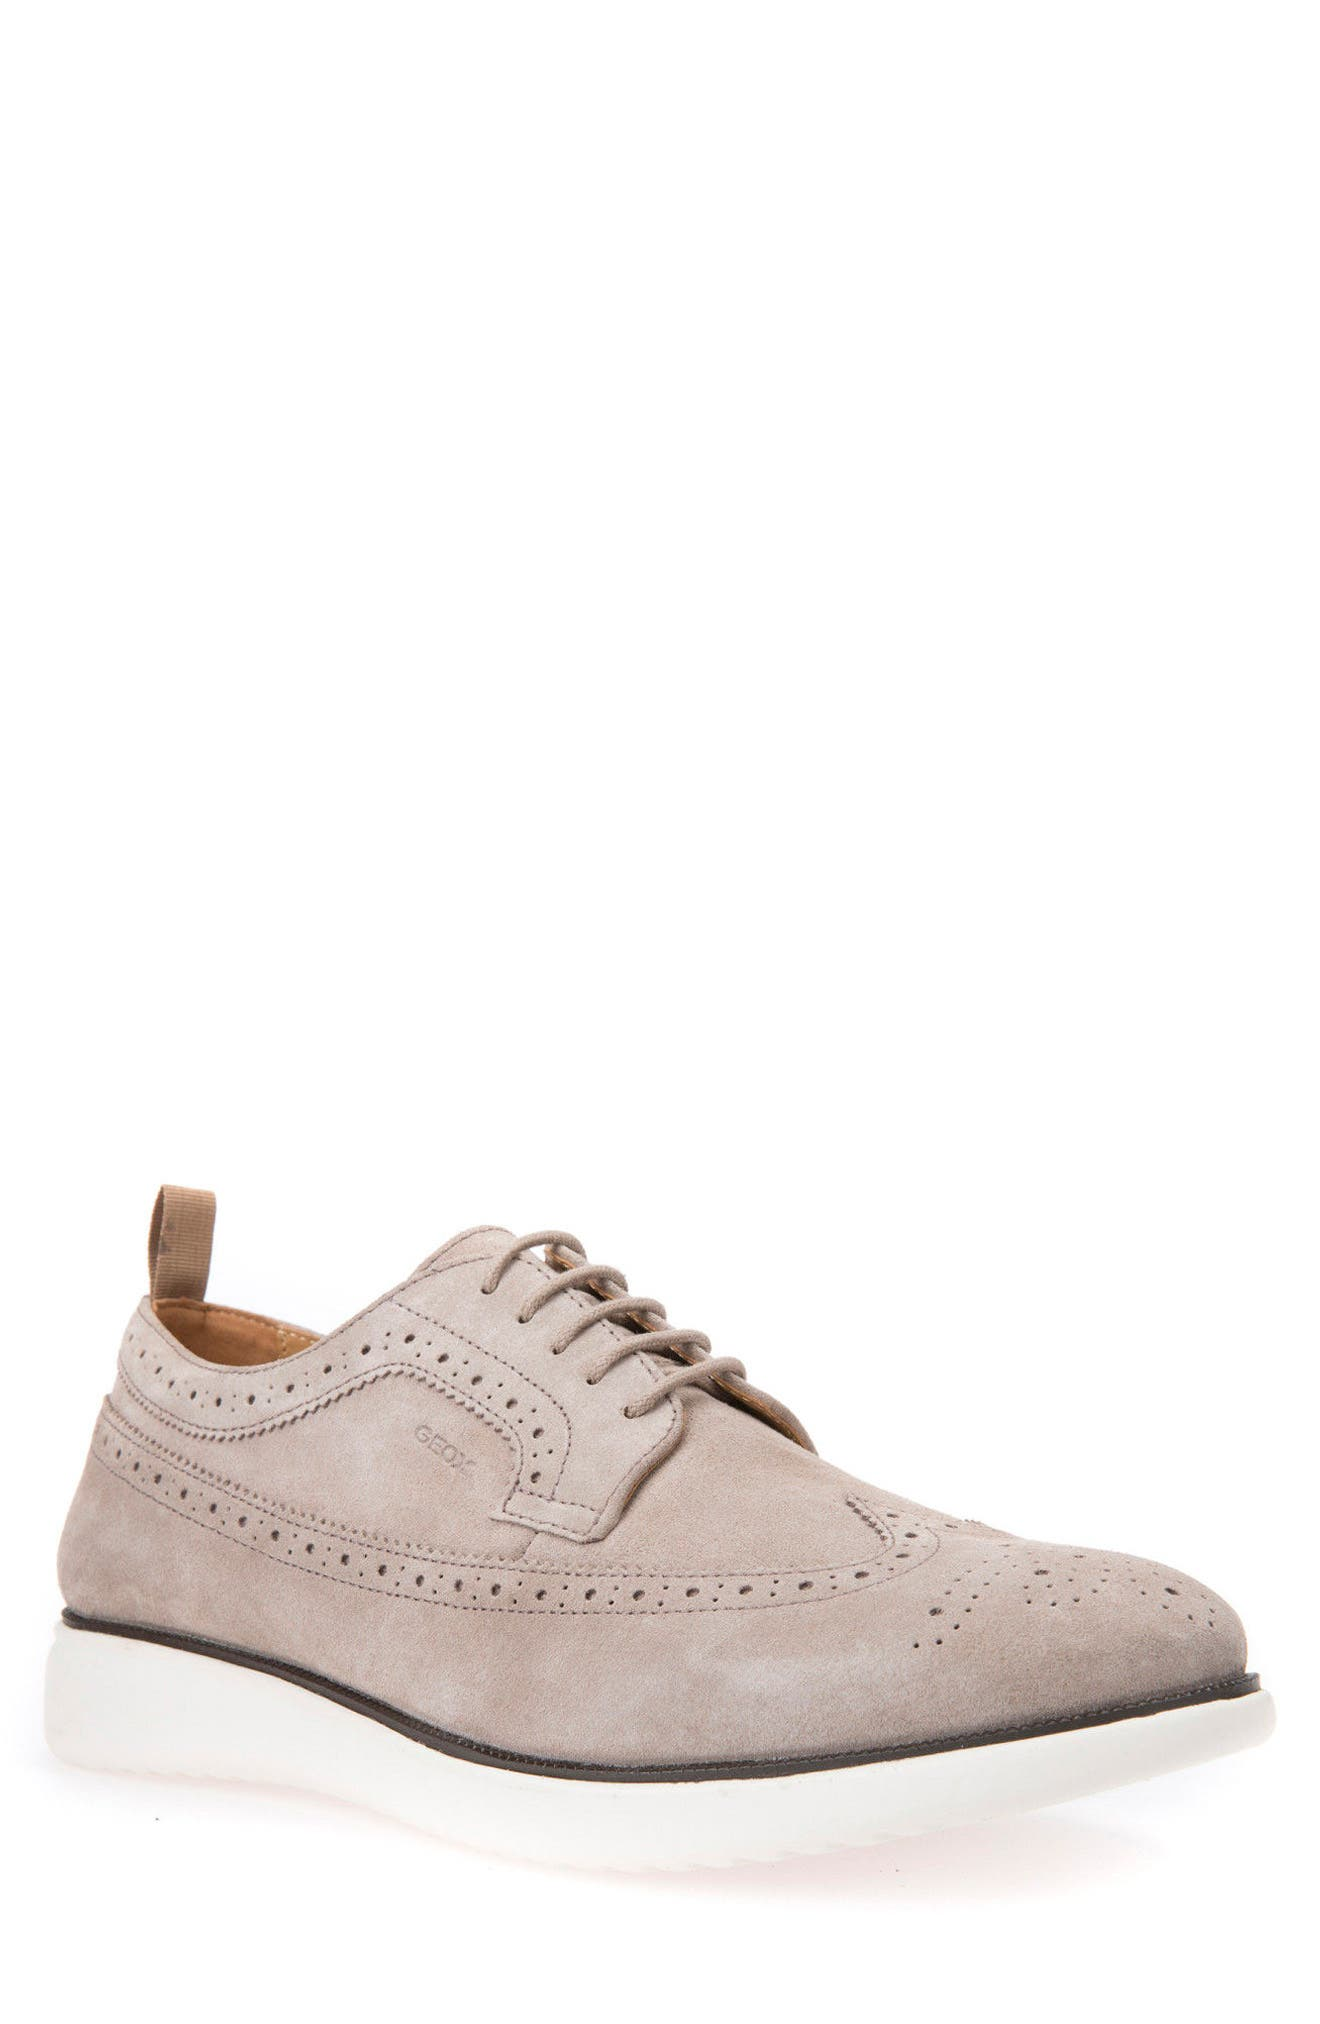 Geox Winfred 2 Wingtip (Men)